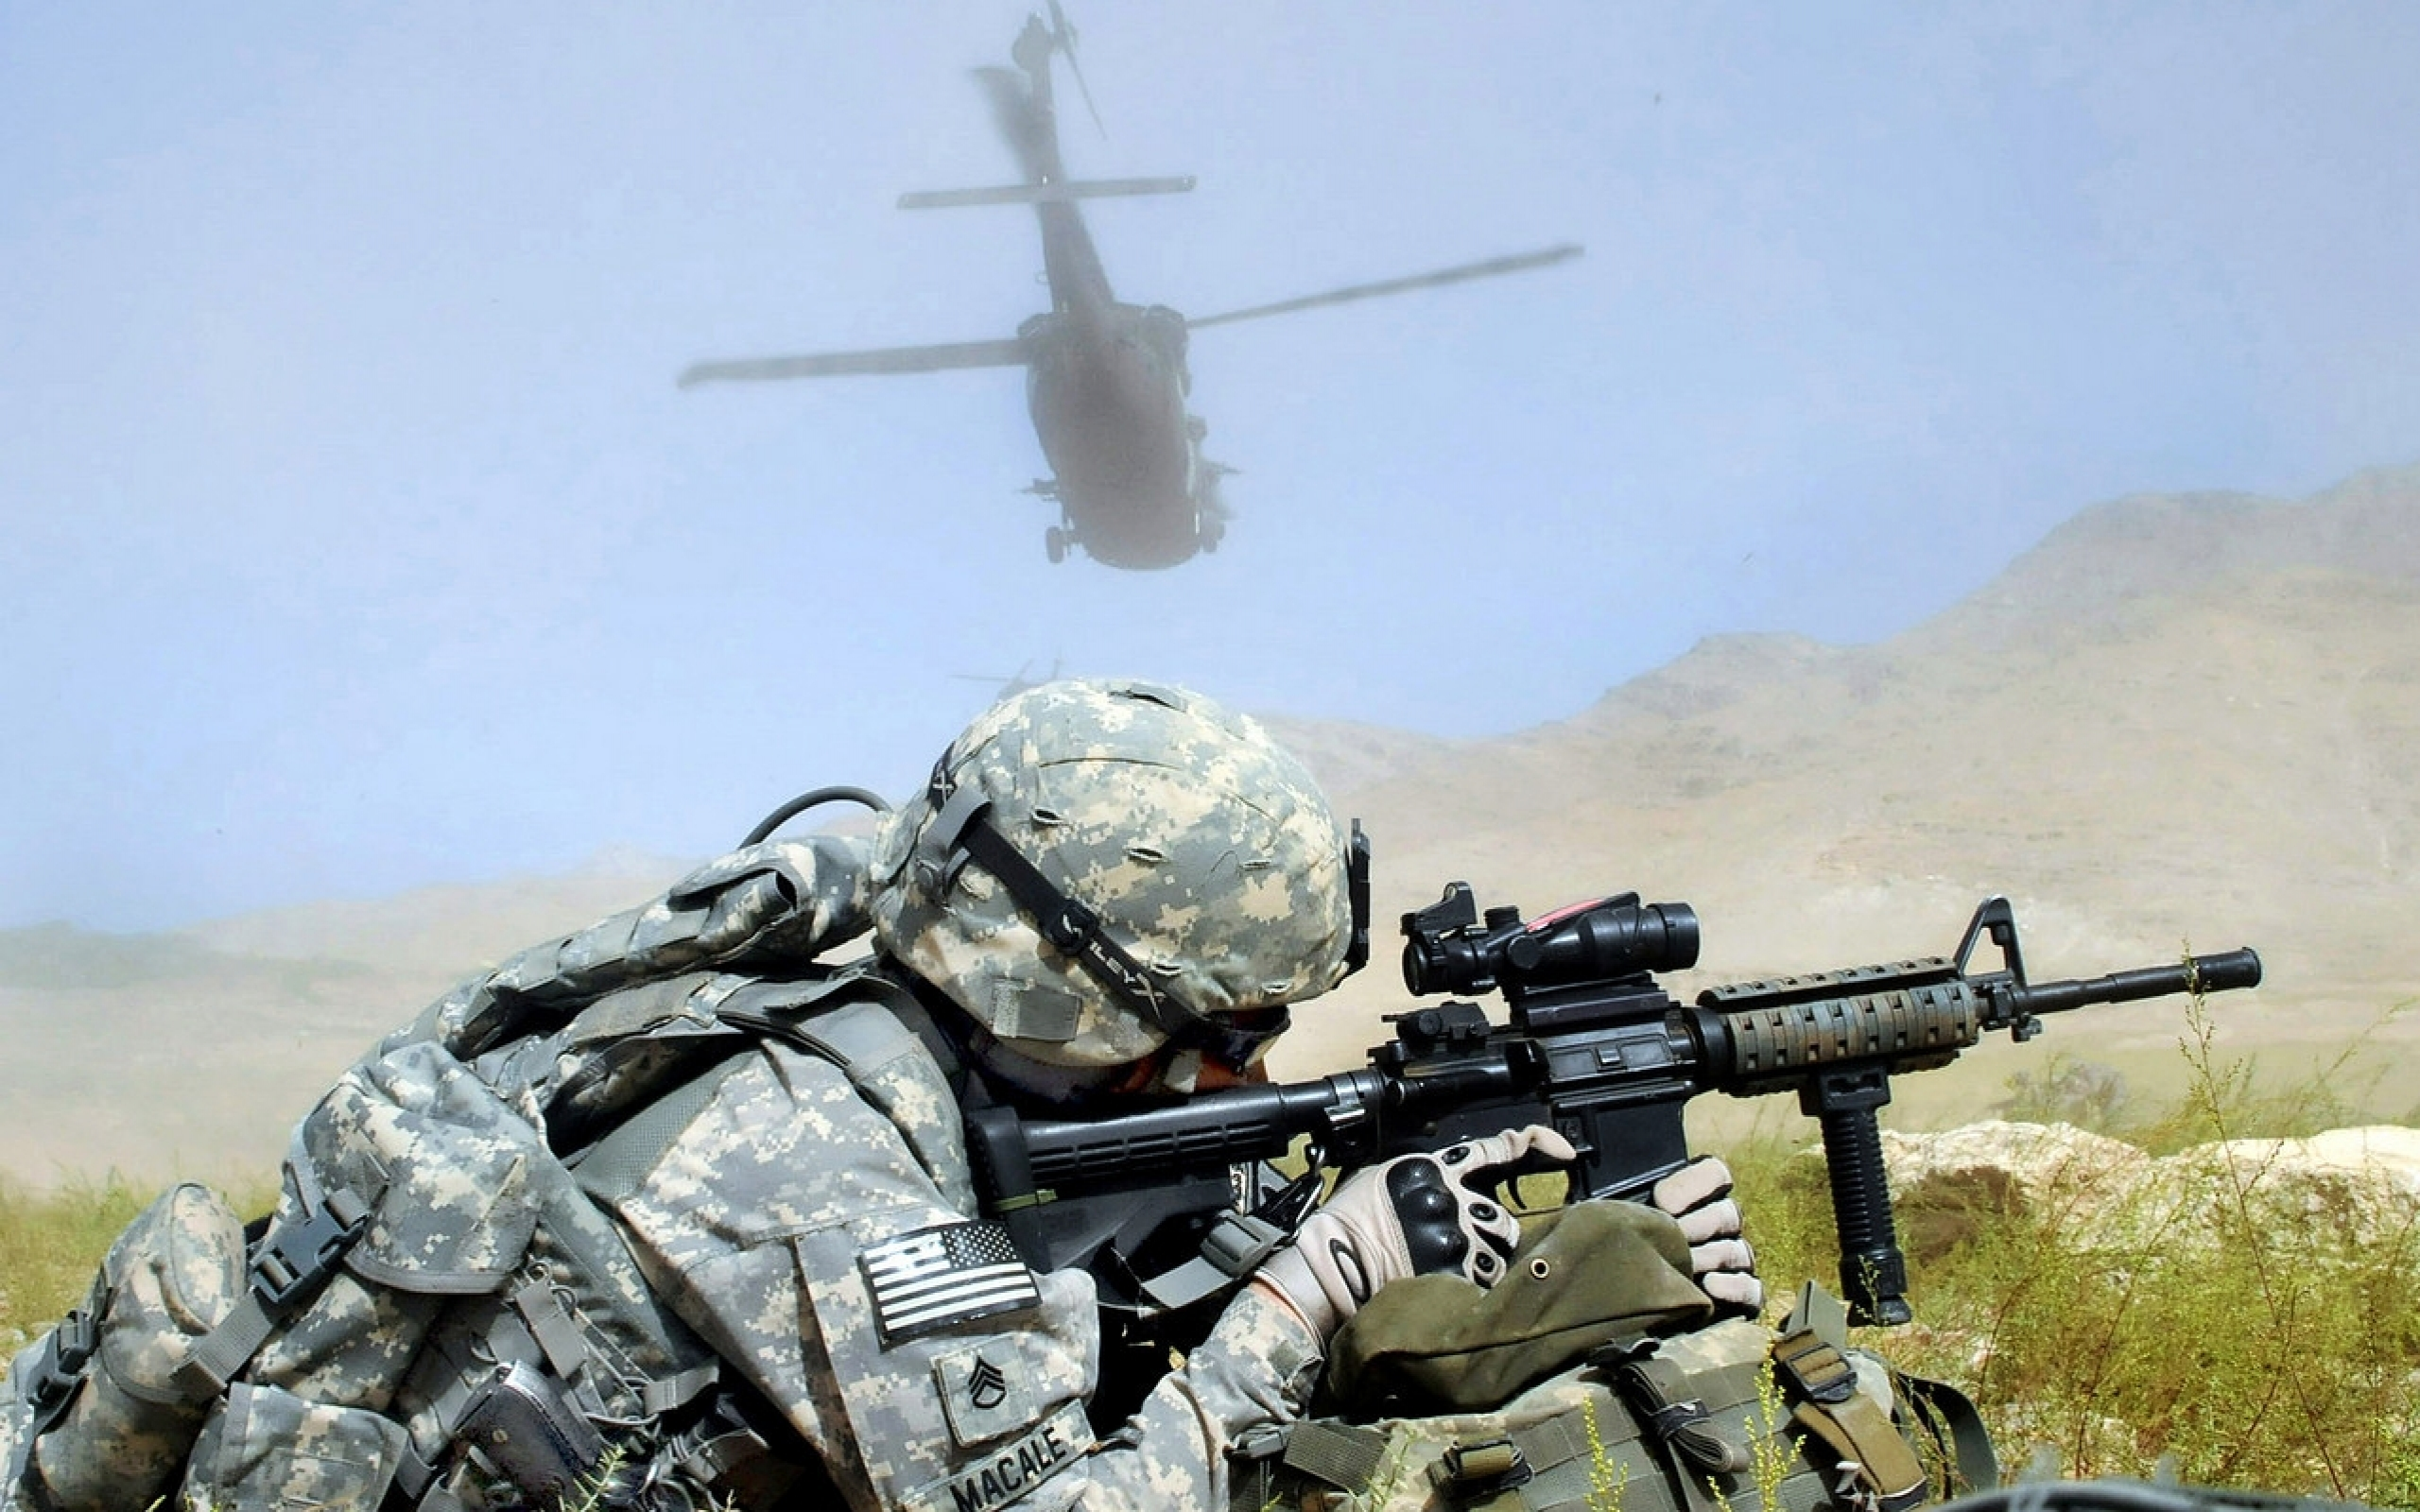 Download u s army wallpaper gallery - Military wallpaper army ...